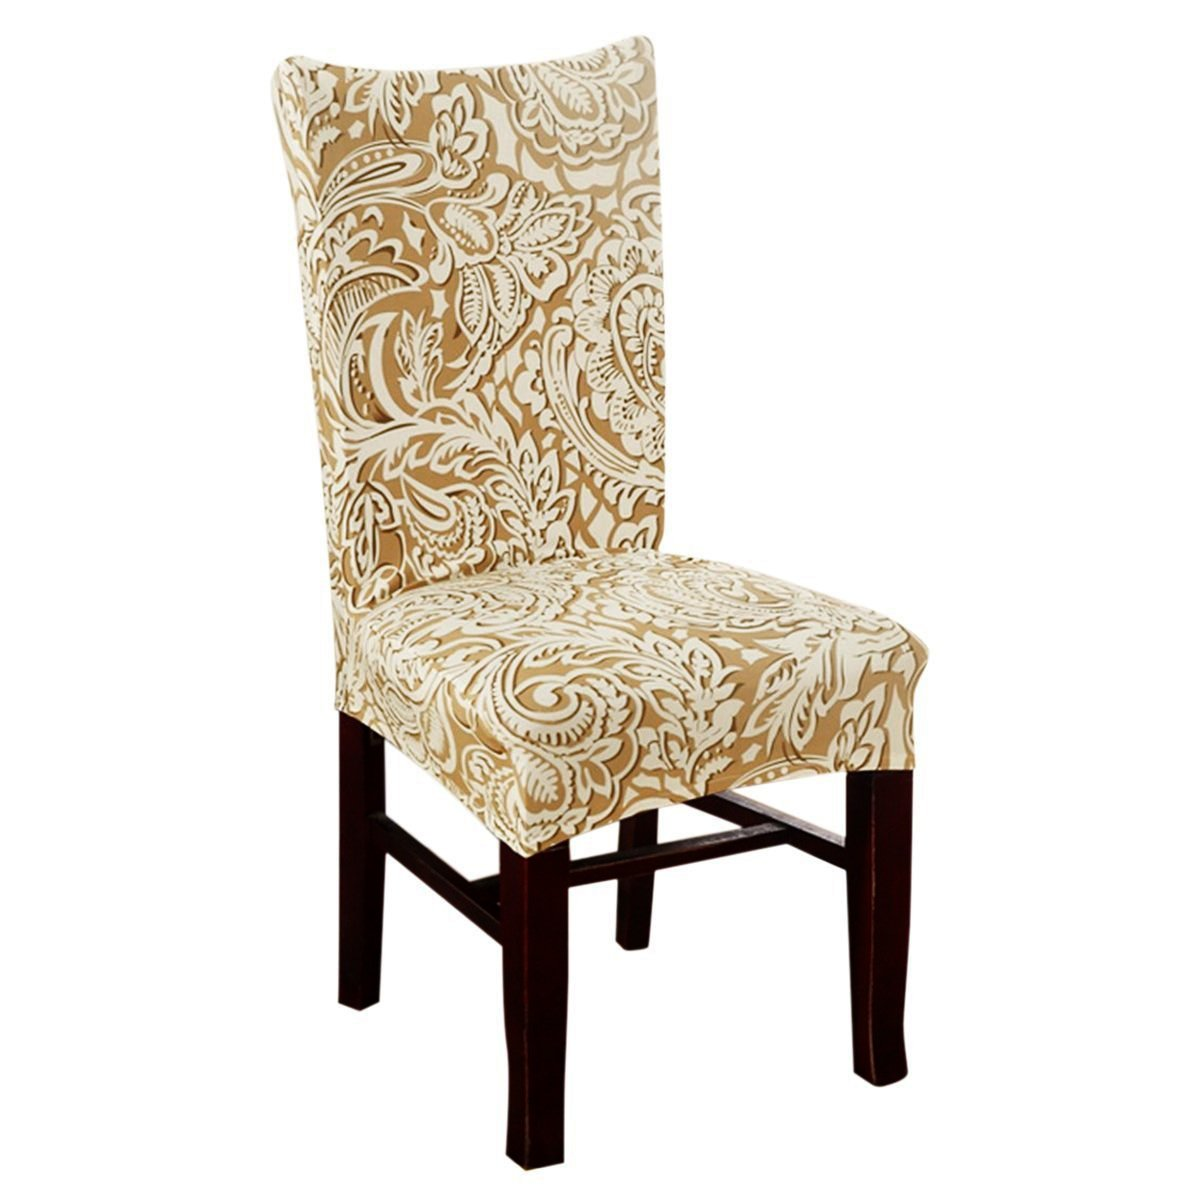 Deisy Dee Stretch Chair Cover Removable Washable for Hotel Dining Room Ceremony Chair Slipcovers Pack of 6 (D) by Deisy Dee (Image #2)